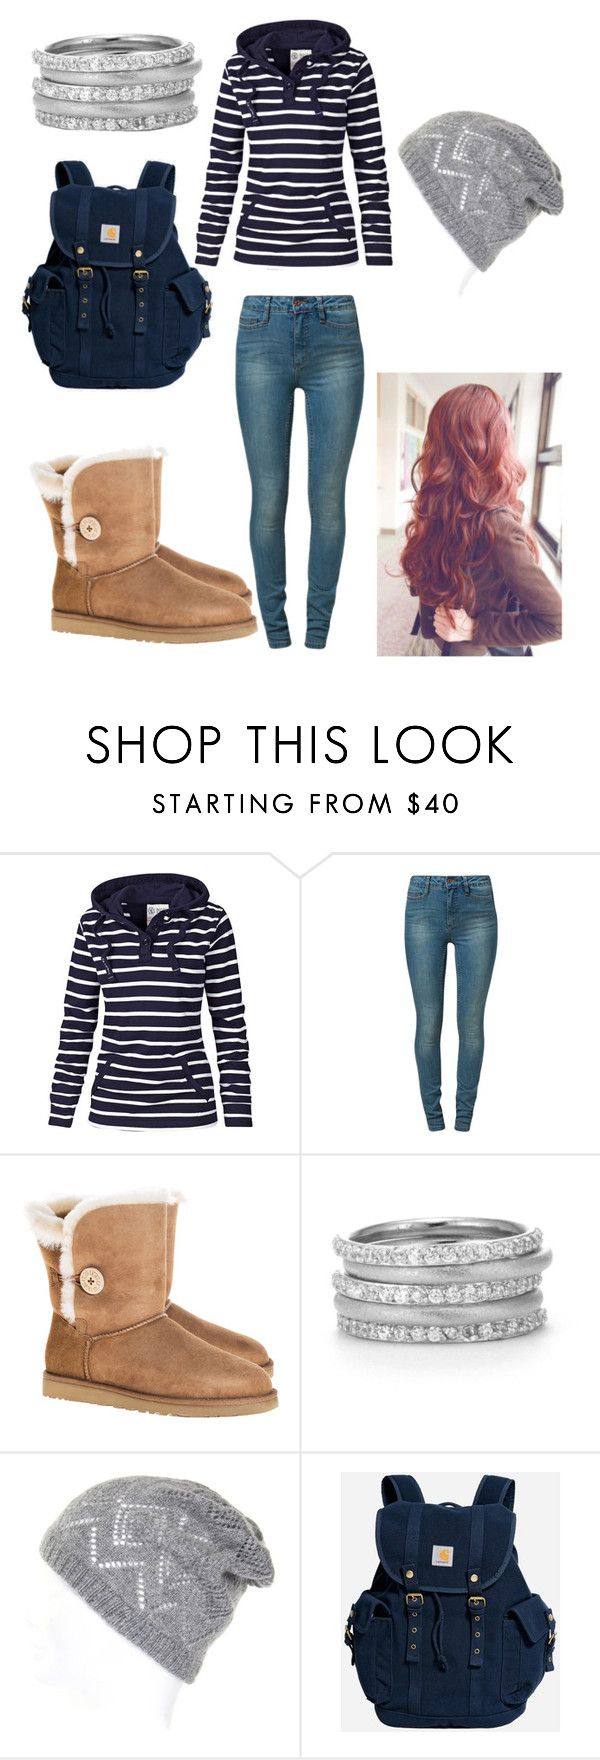 """""""I love you so much LiviBoo! ~missy"""" by oknme ❤ liked on Polyvore featuring Fat Face, Vero Moda, UGG Australia and Carhartt"""